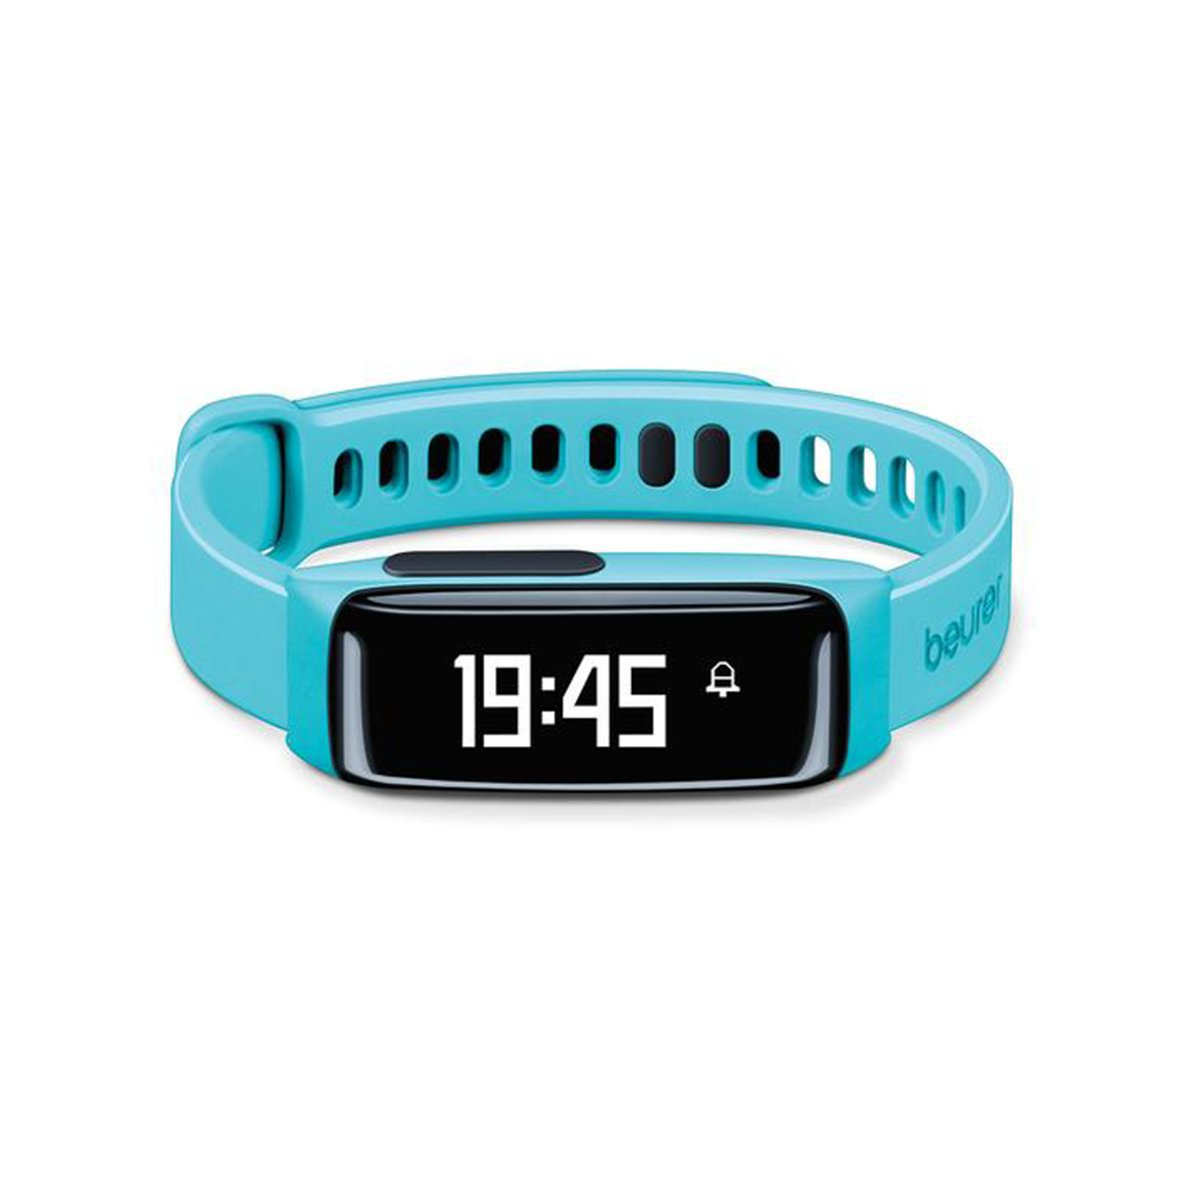 Beurer Activity Sensor AS 81 Bodyshape - Turquoise